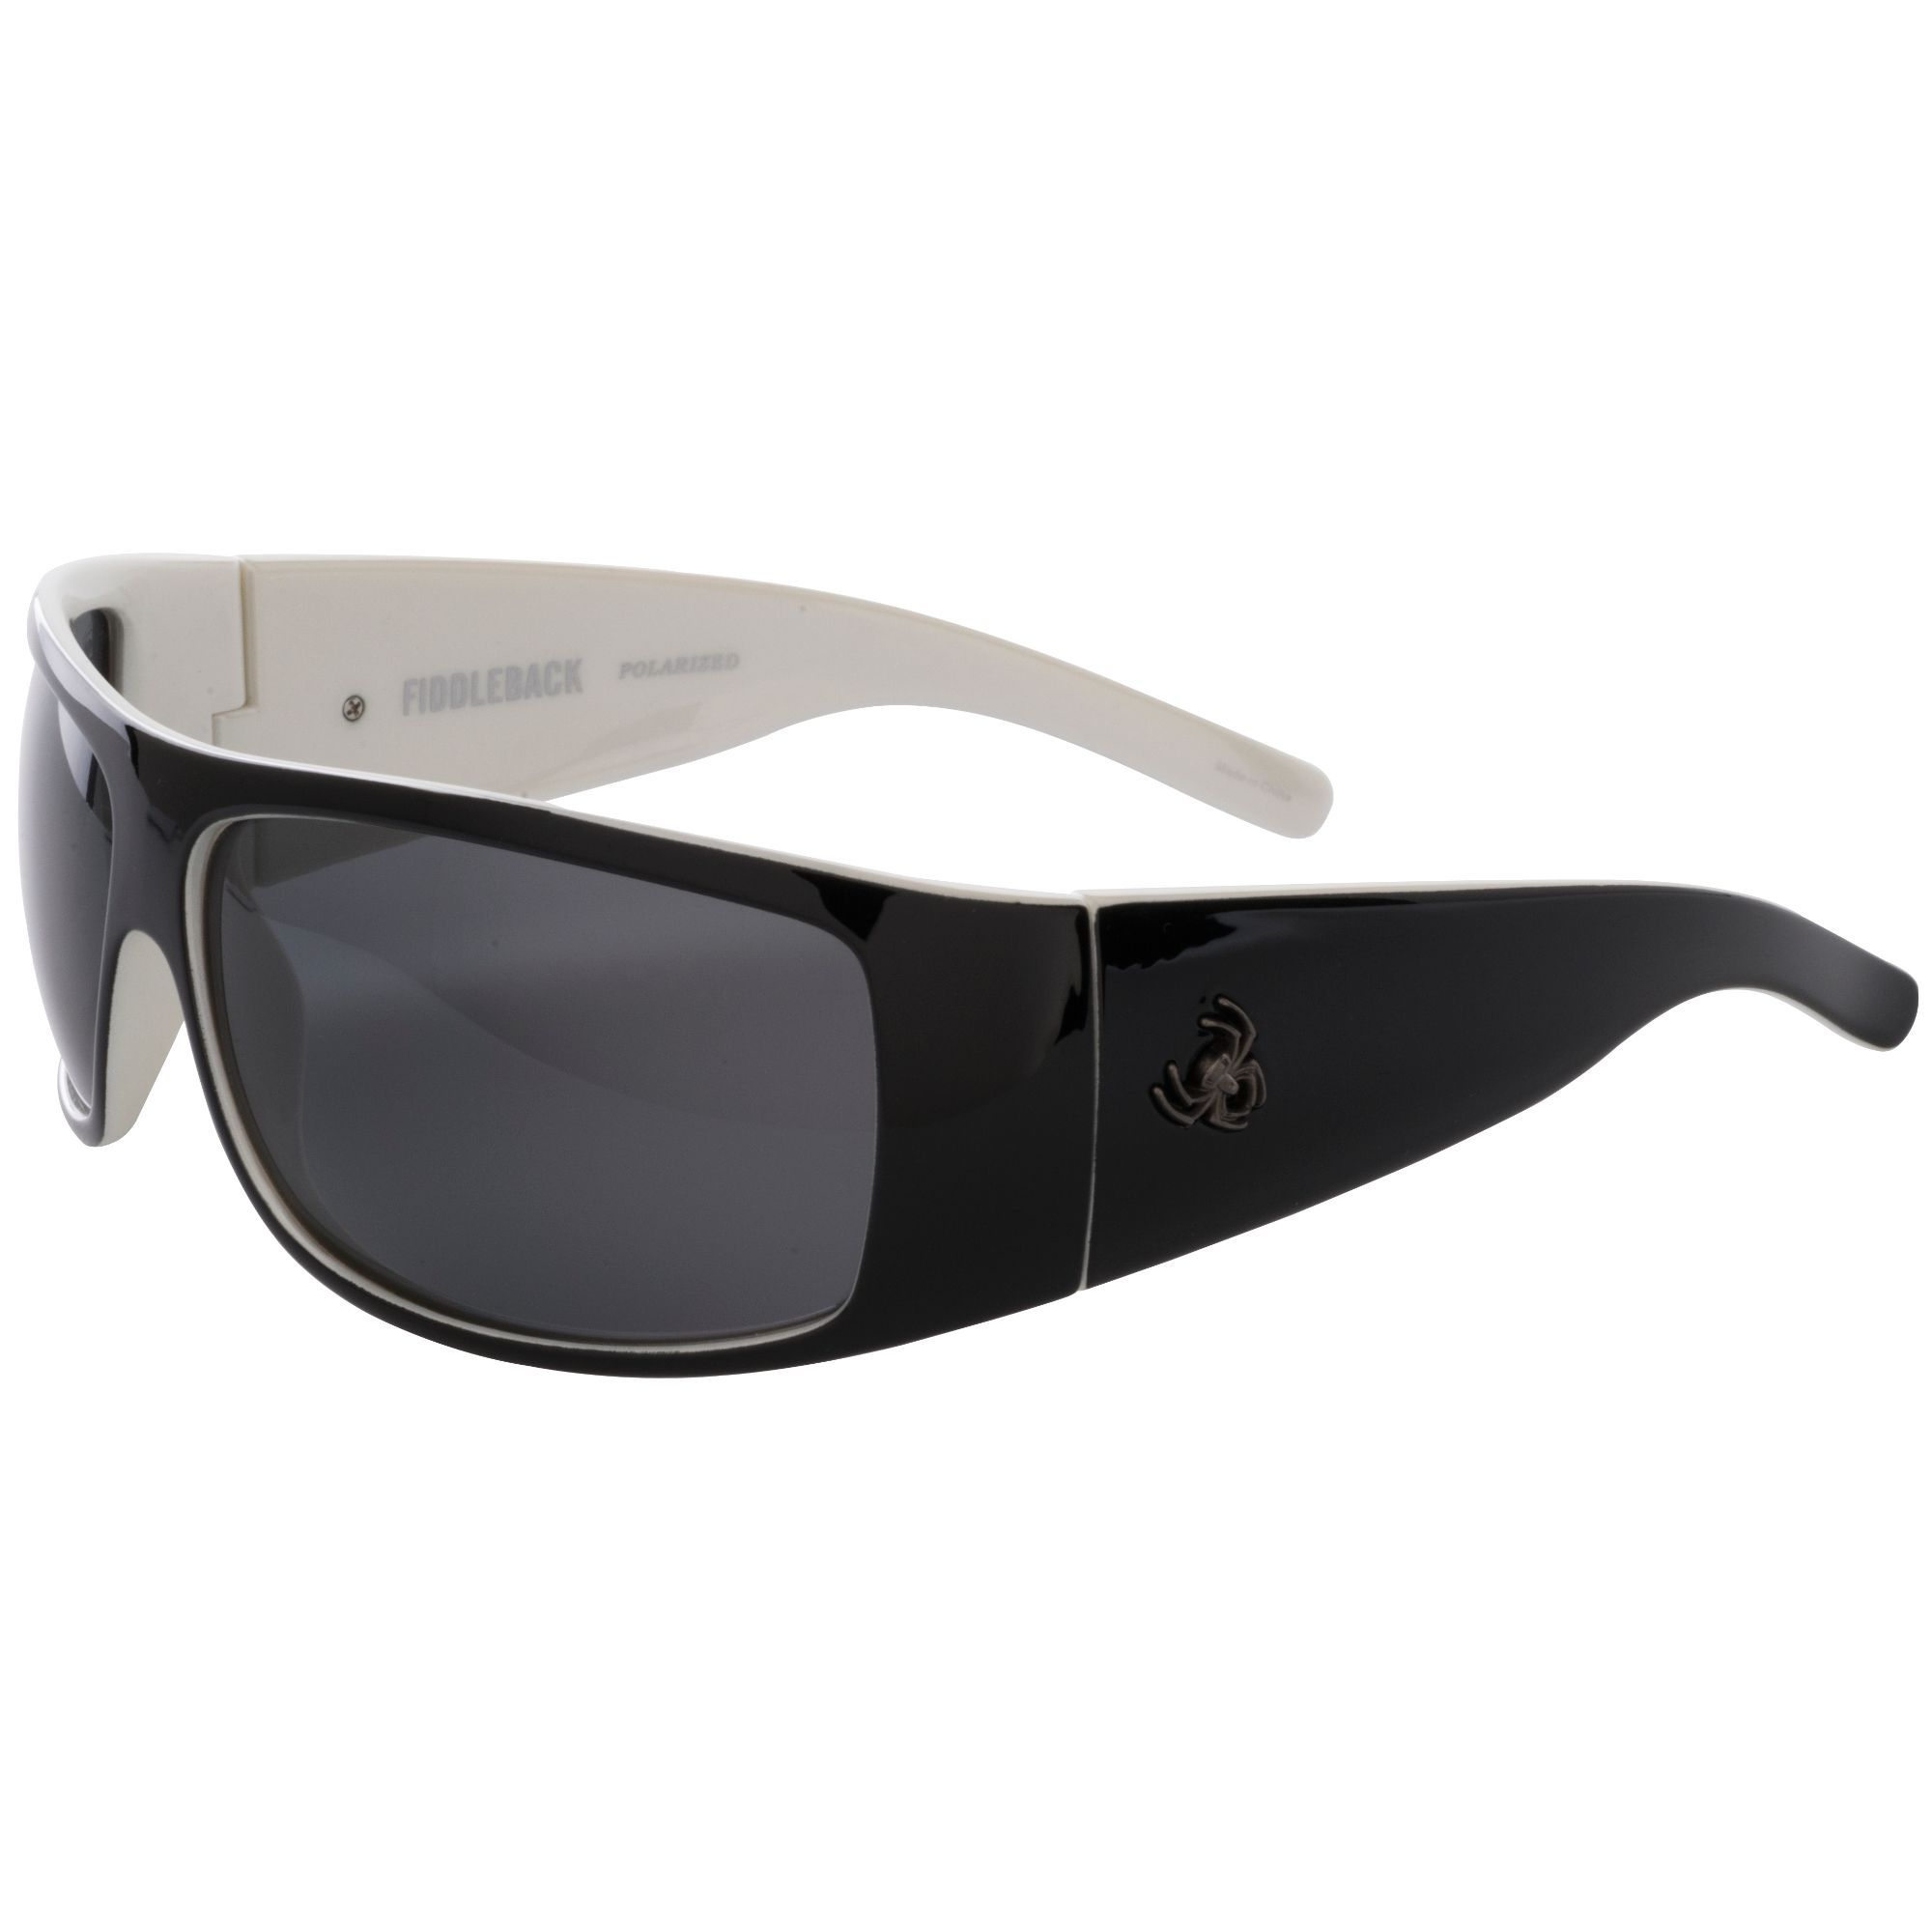 29faed97a8 Spiderwire® Fiddleback Sunglasses